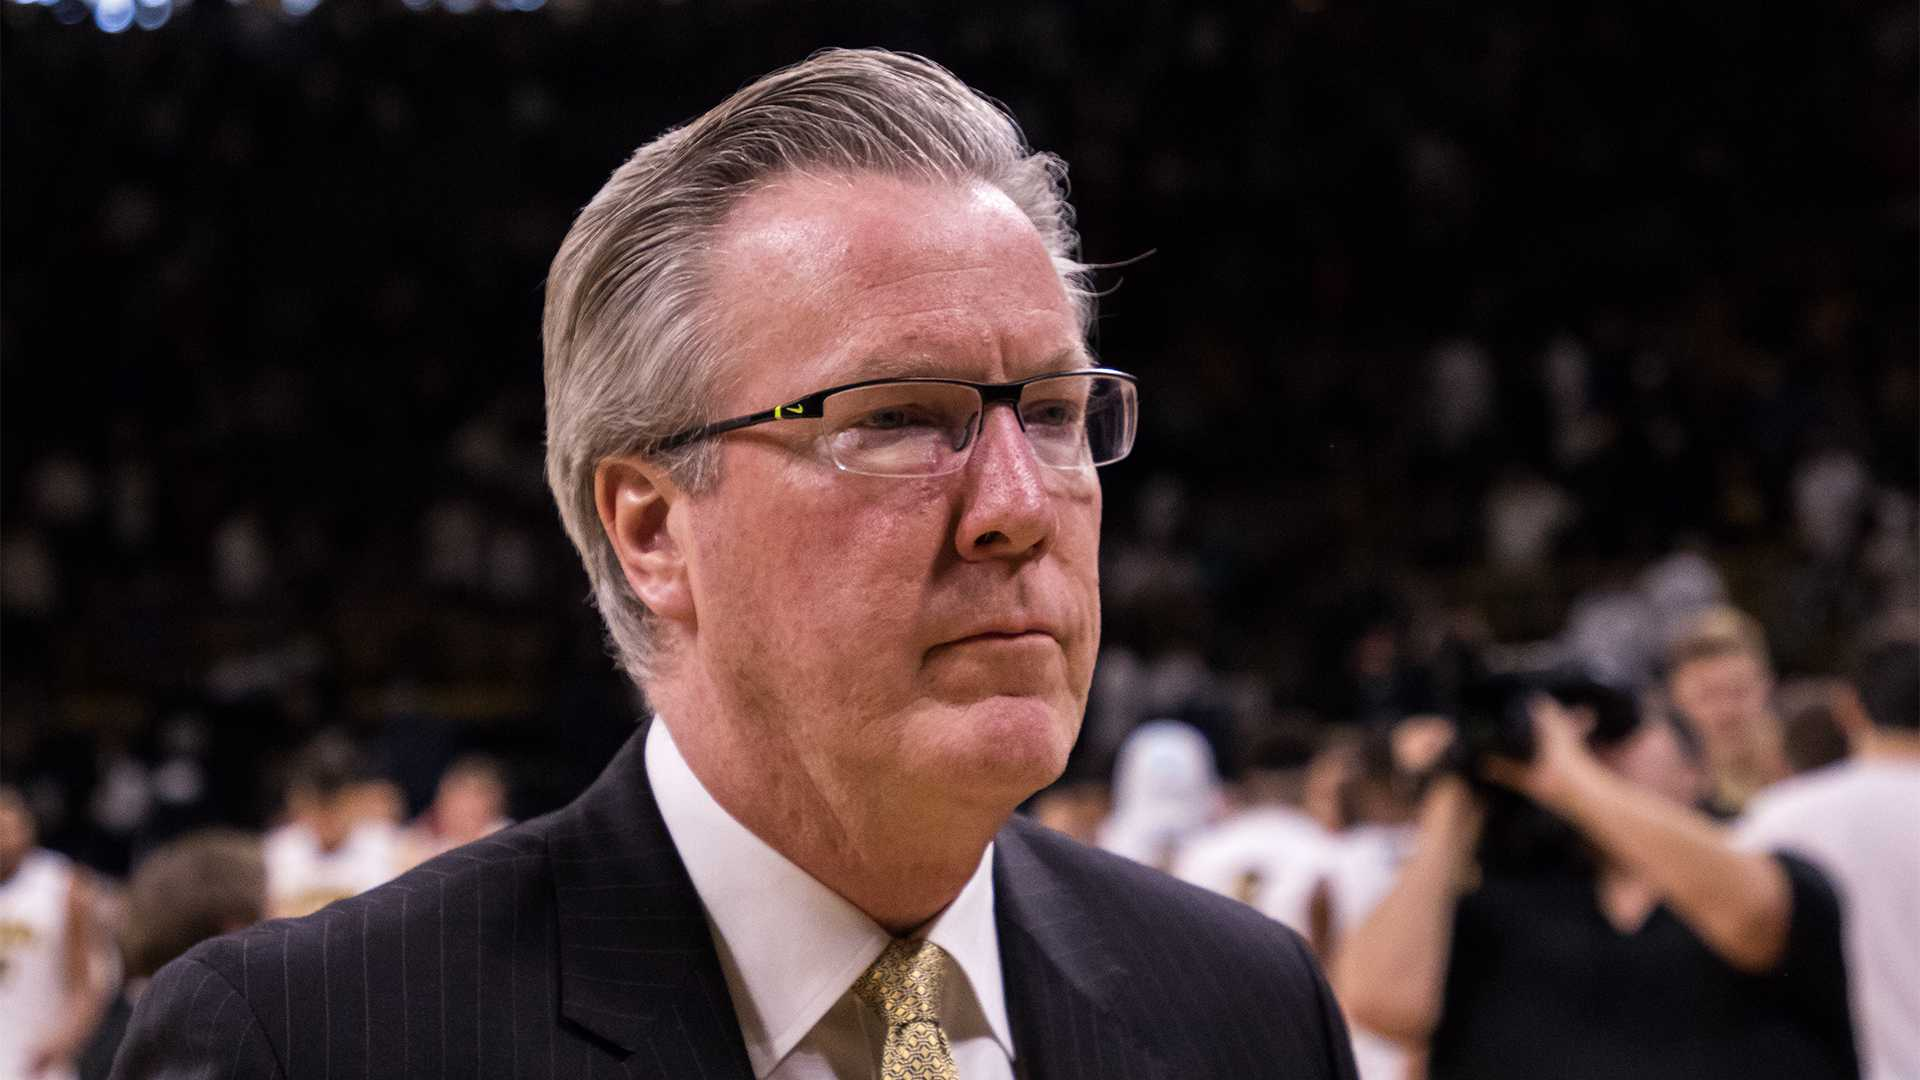 Iowa basketball head coach Fran McCaffery after a game against Purdue University on Saturday, Jan. 20, 2018. The Boilermakers defeated the Hawkeyes 87-64. (David Harmantas/The Daily Iowan)